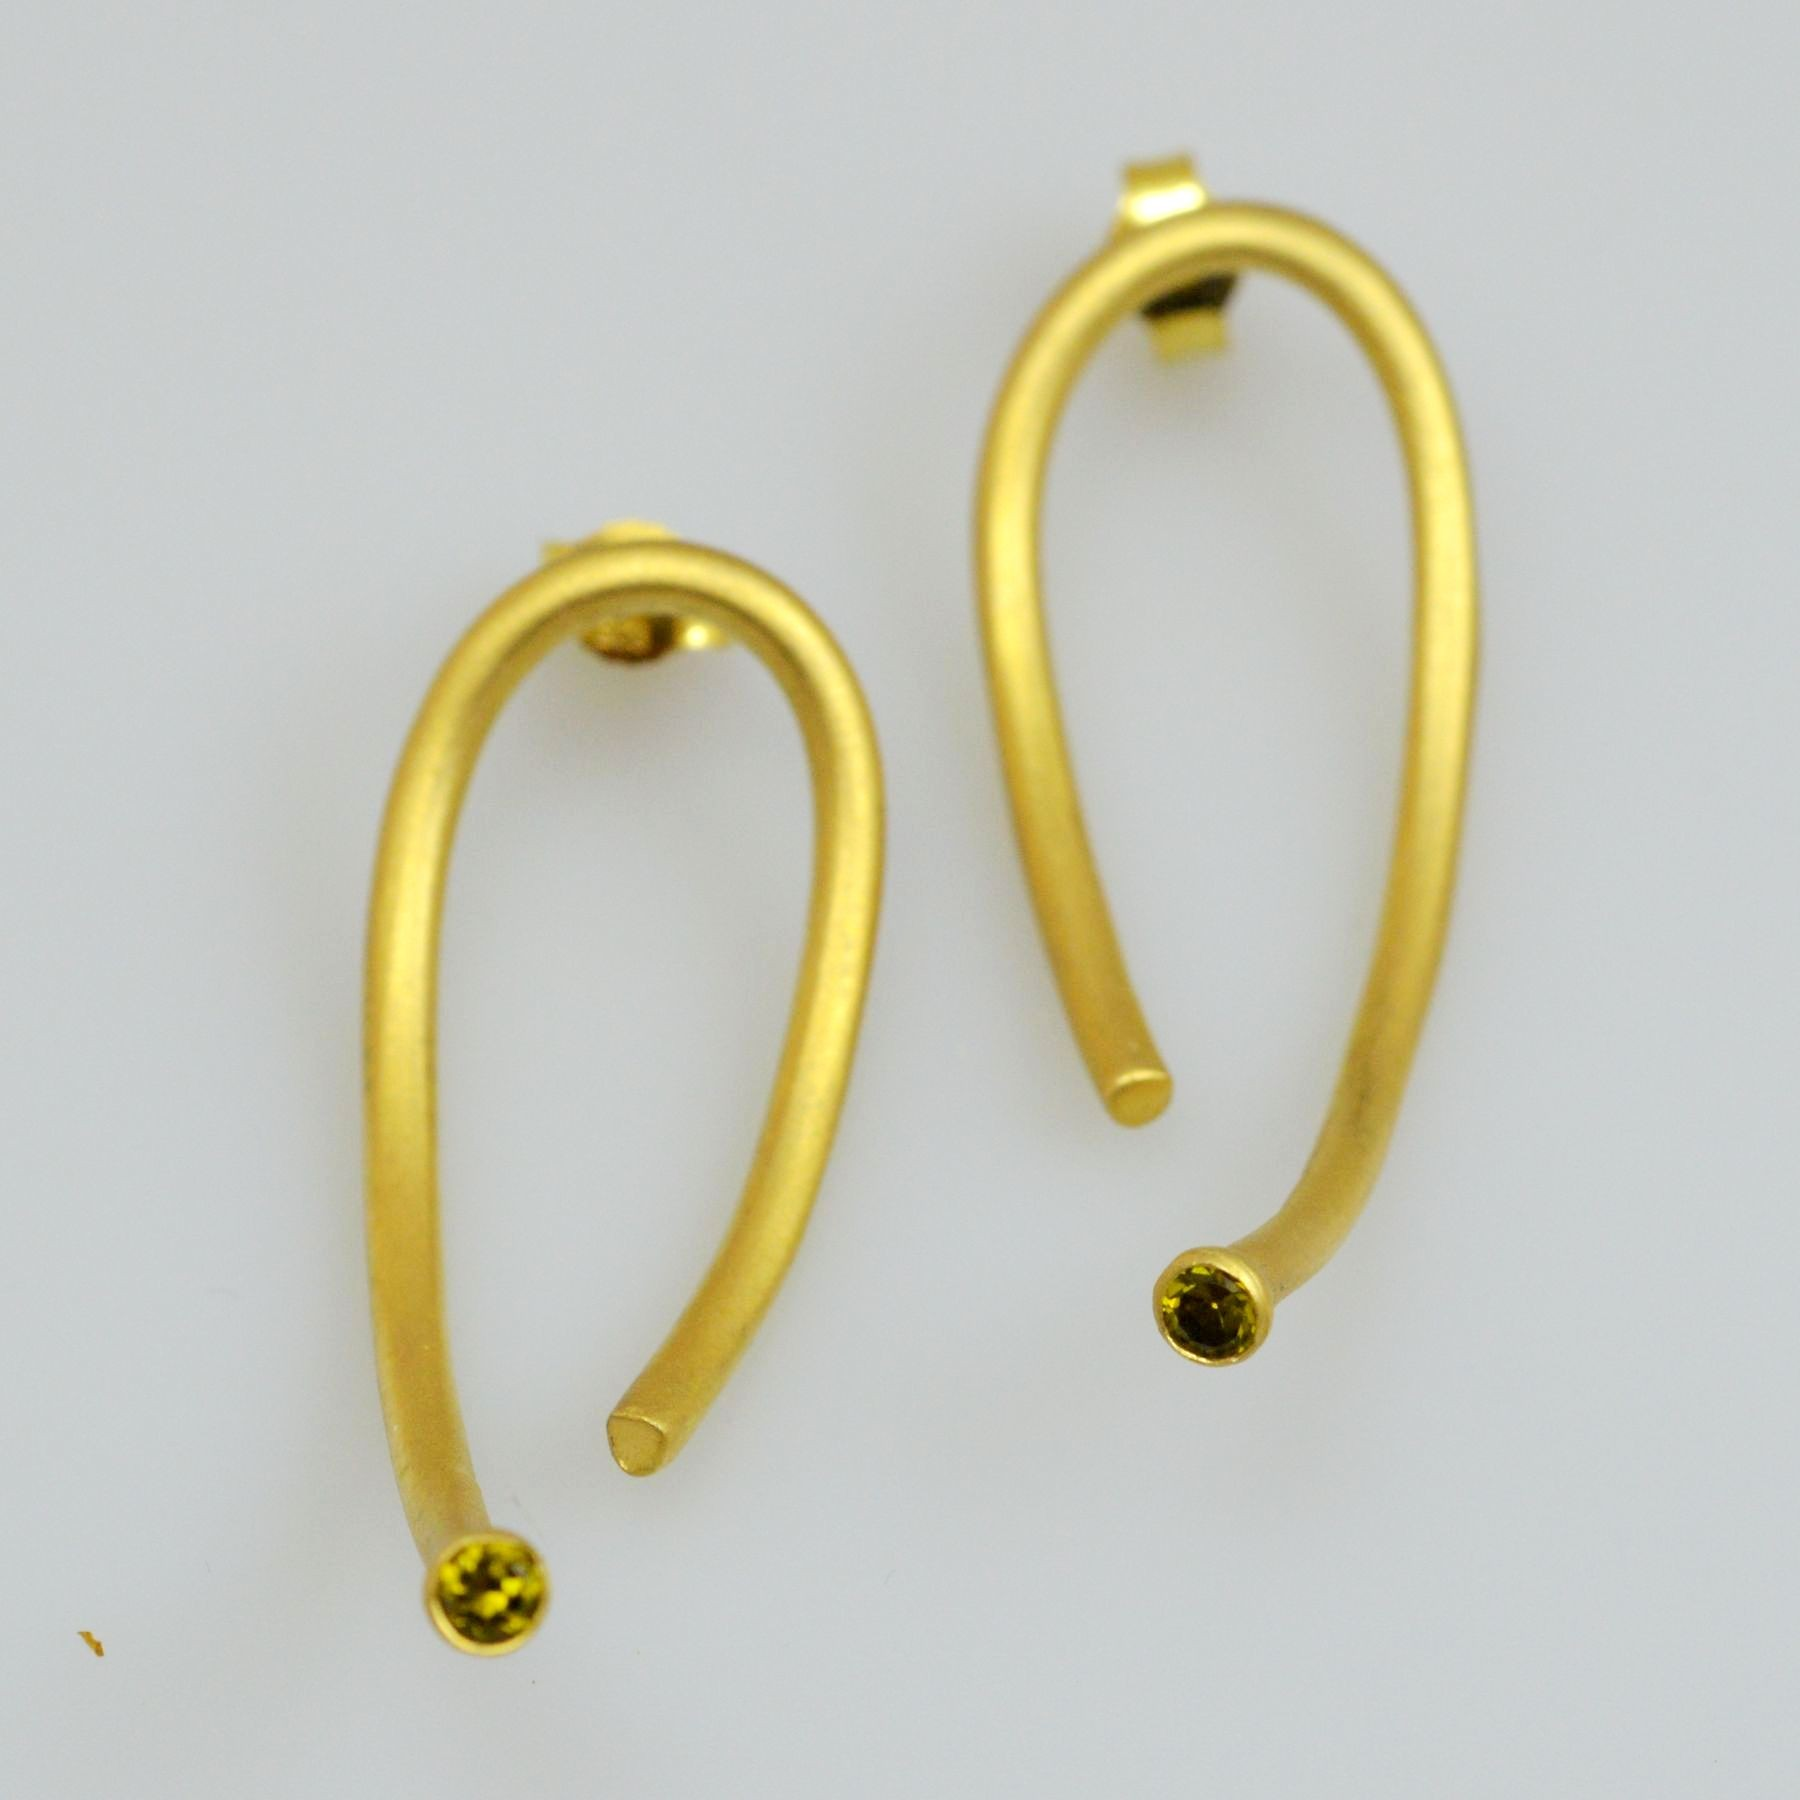 Silver earrings 925 gold plated with synthetic stones